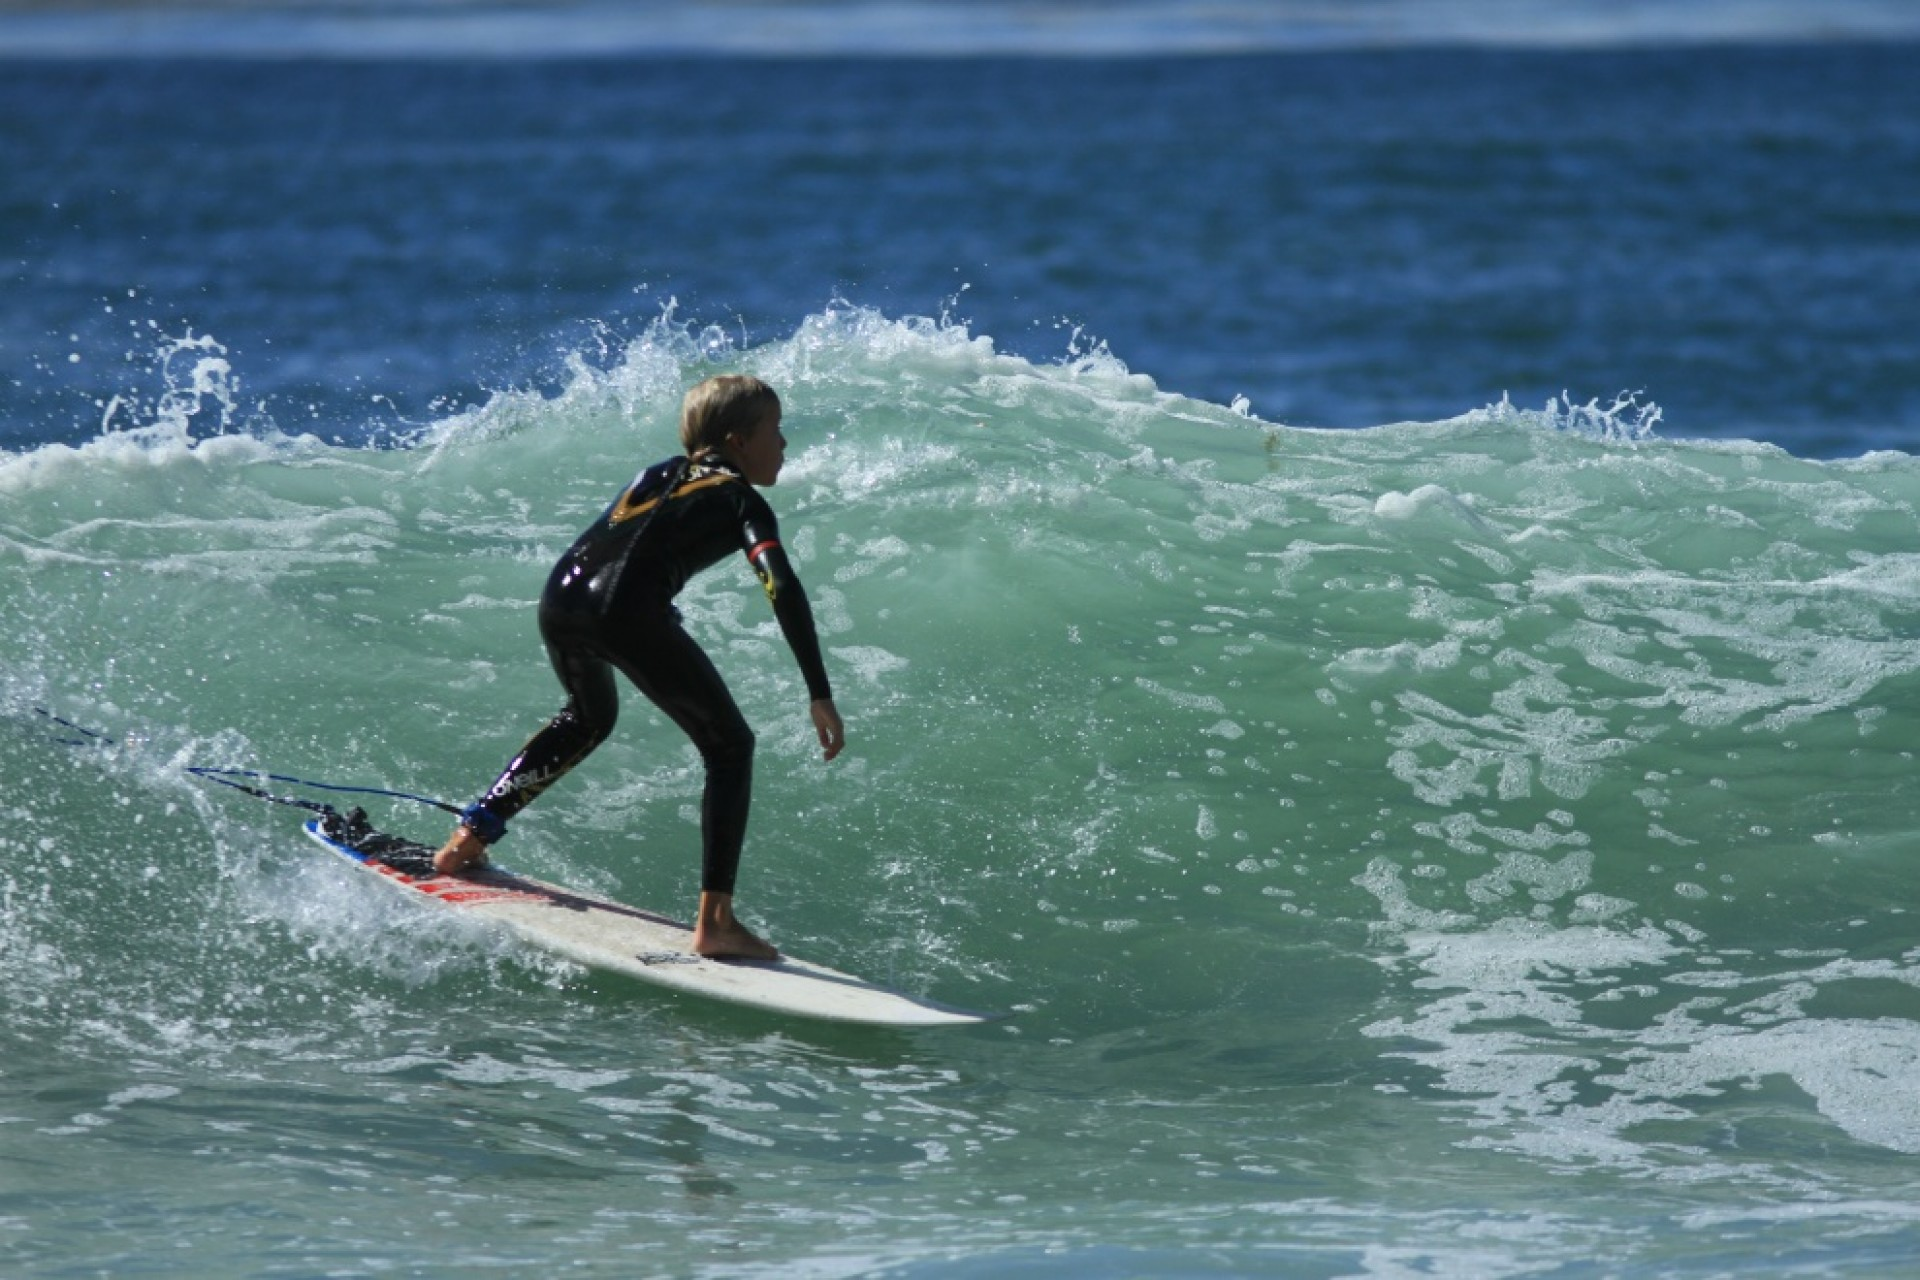 David Stelter's photo of Salt Creek